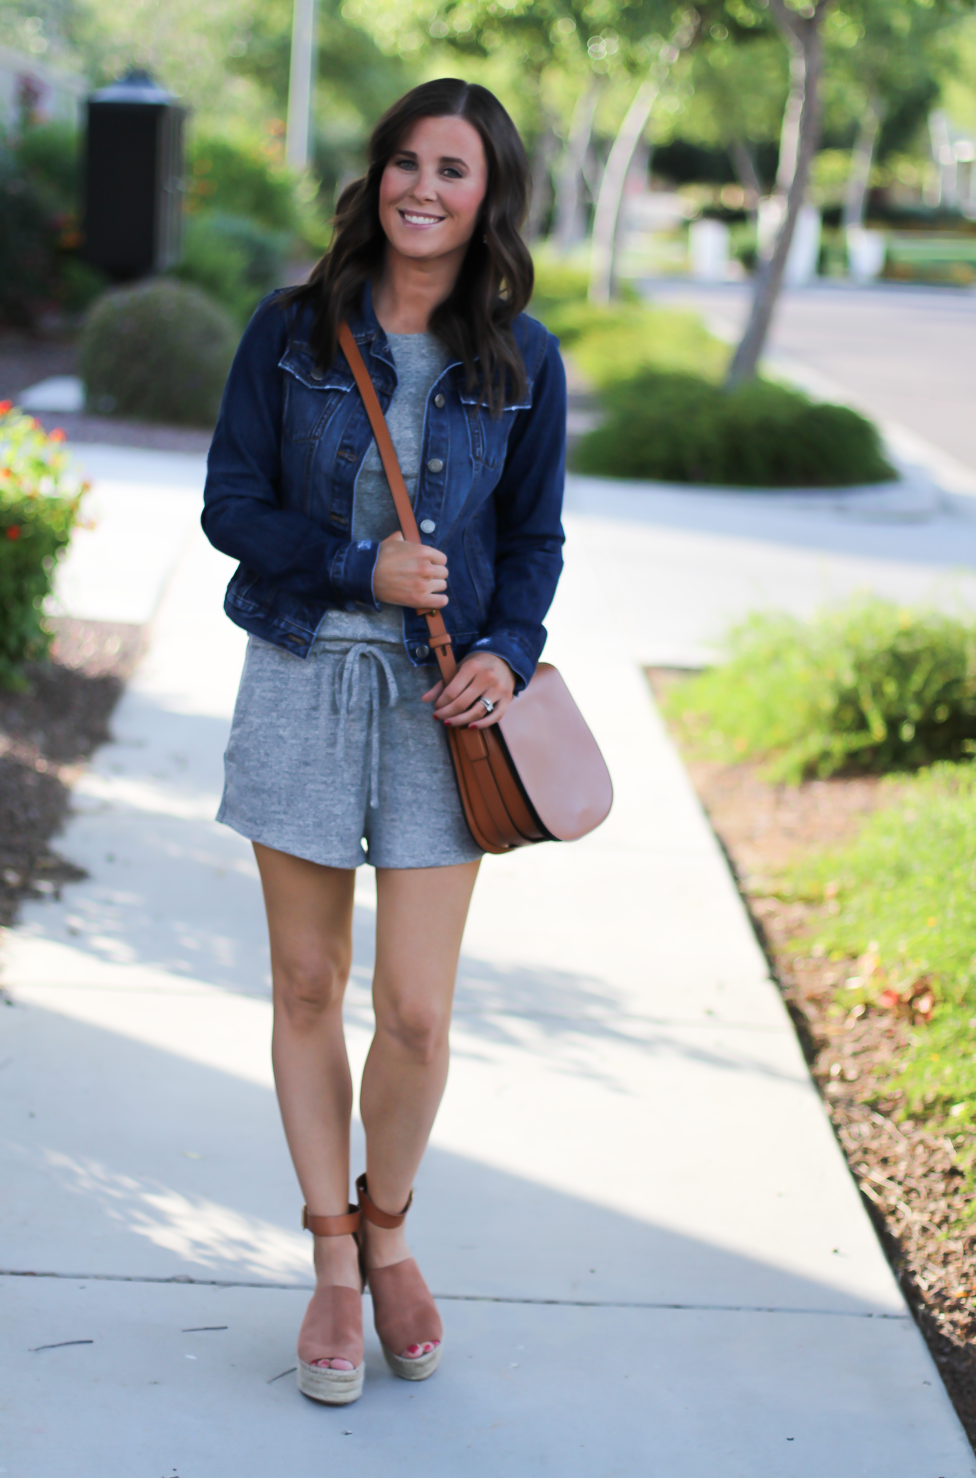 Grey Knit Denim Romper, Denim Jacket, Suede Wedge Sandals, Tan Leather Saddle Bag, Gap, Banana Republic, Chloe, Tory Burch